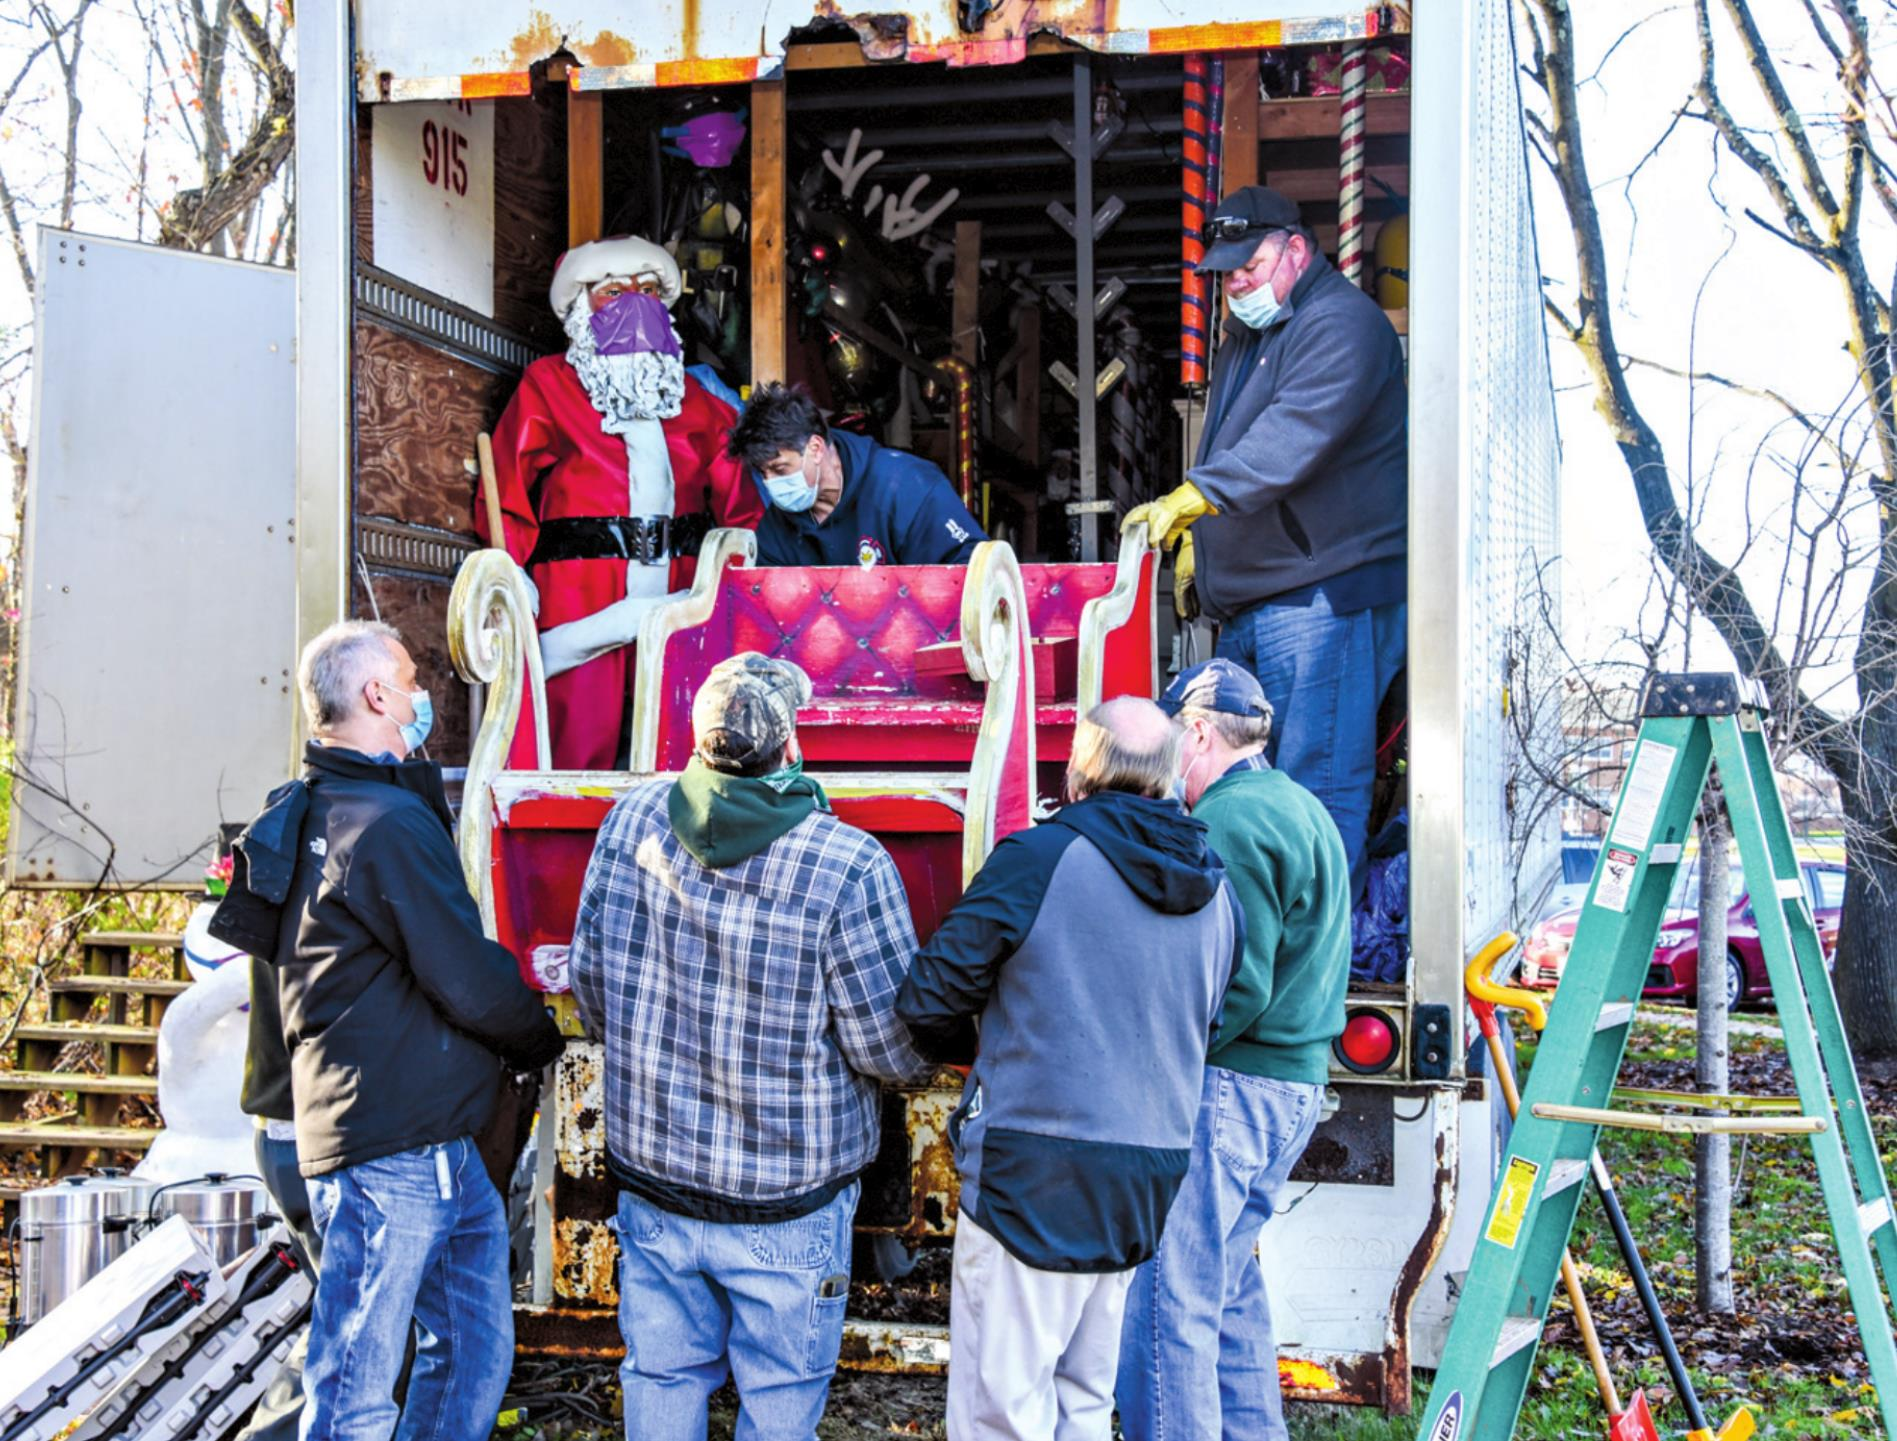 Camuso Holiday Display Will Open With COVID-19 Restrictions in Place